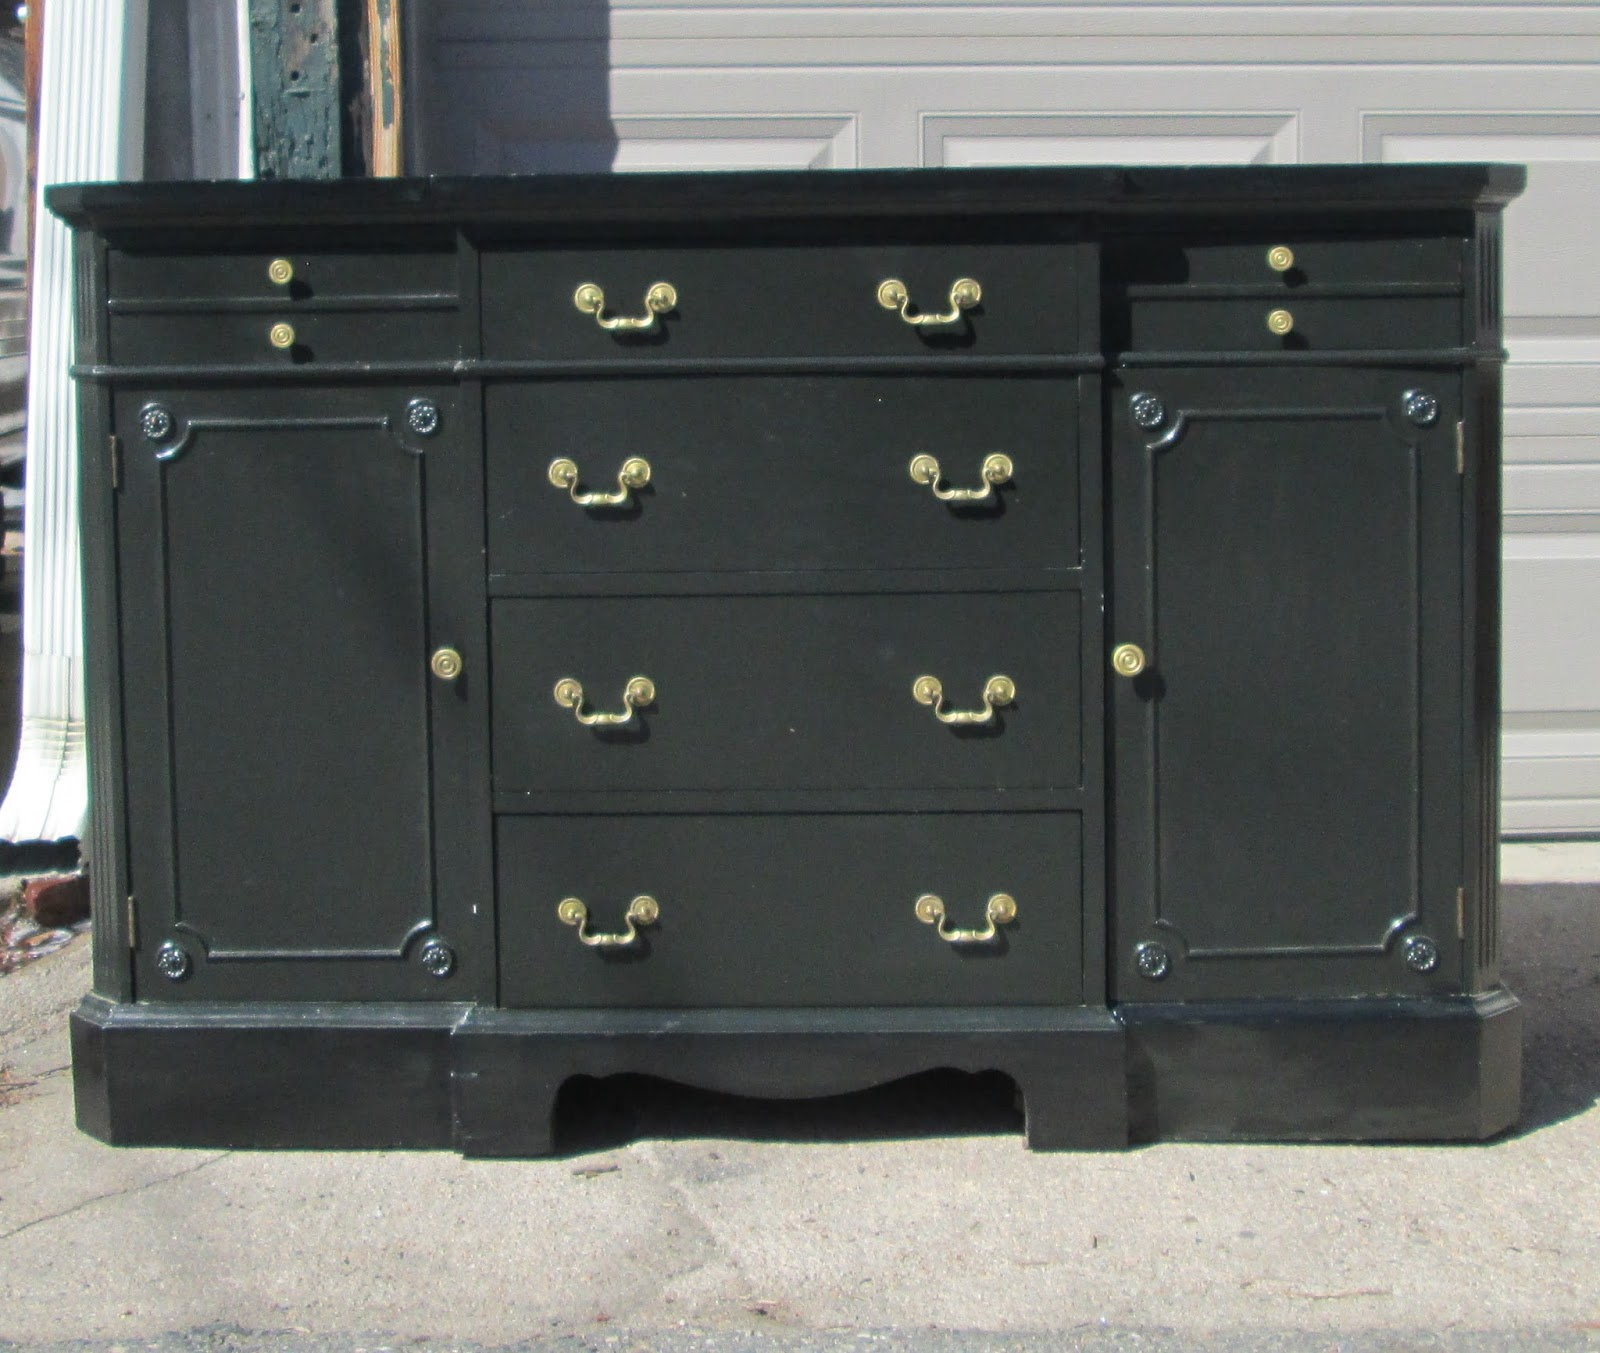 boho chic classic vintage credenza dresser buffet shabby chic black sold. Black Bedroom Furniture Sets. Home Design Ideas